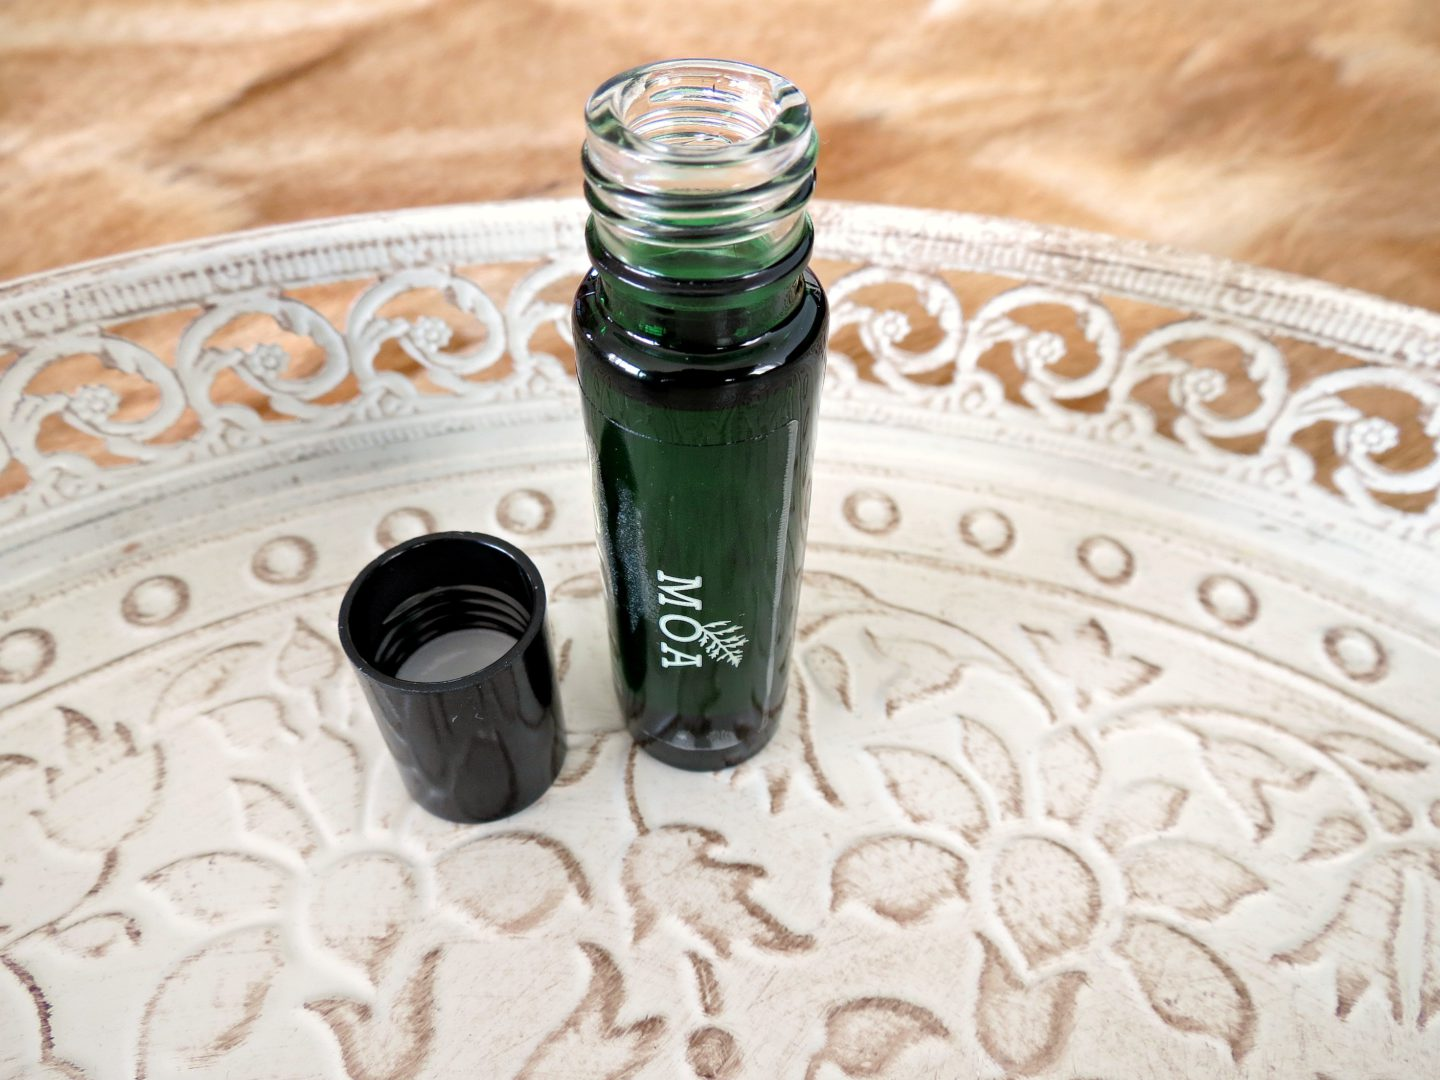 MOA | Ultiem ontspannen met de Fortifying Green Bath Potion